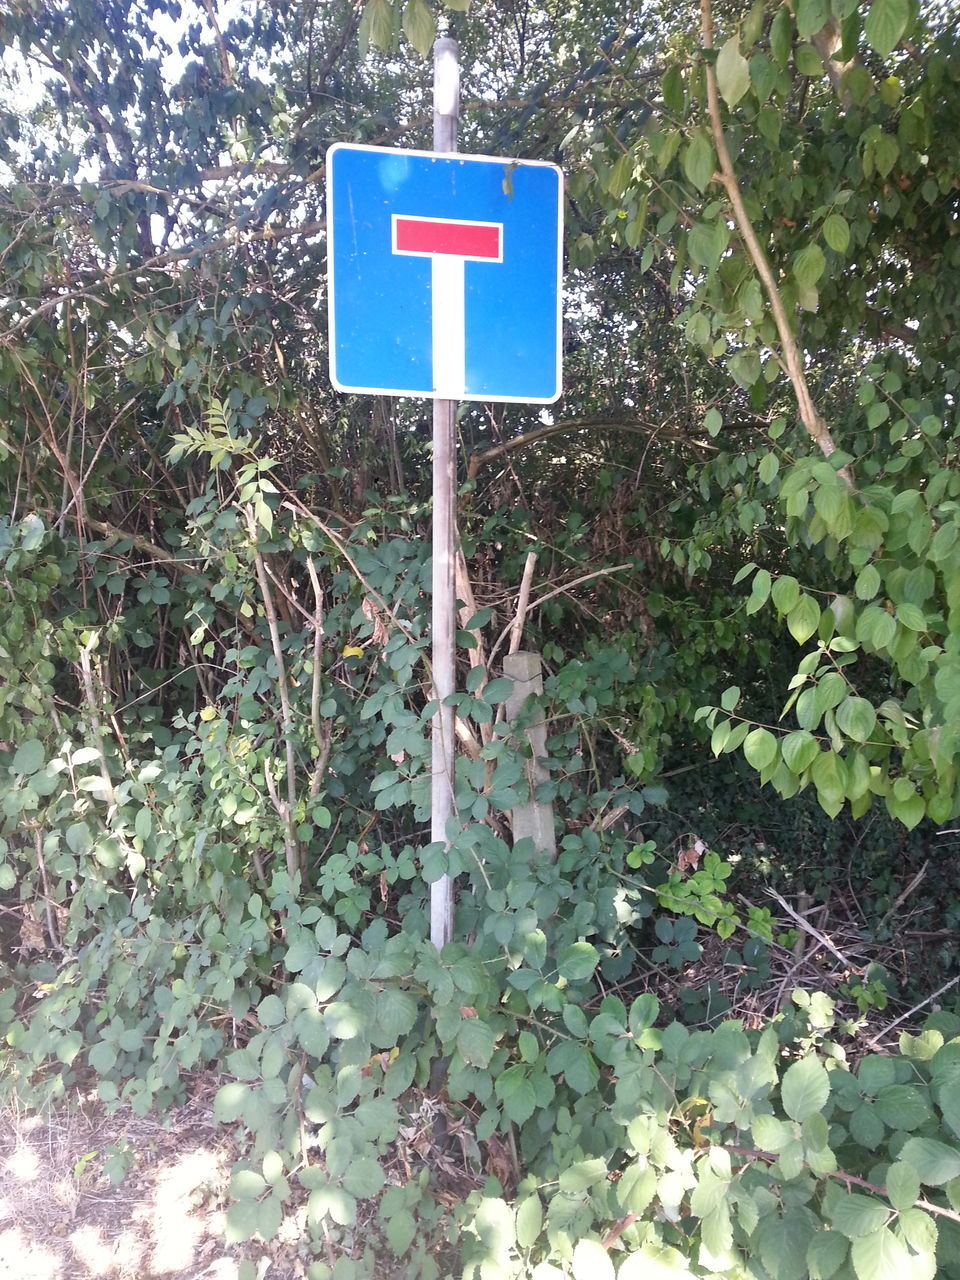 plant, growth, day, communication, no people, green color, nature, blue, outdoors, guidance, road sign, tree